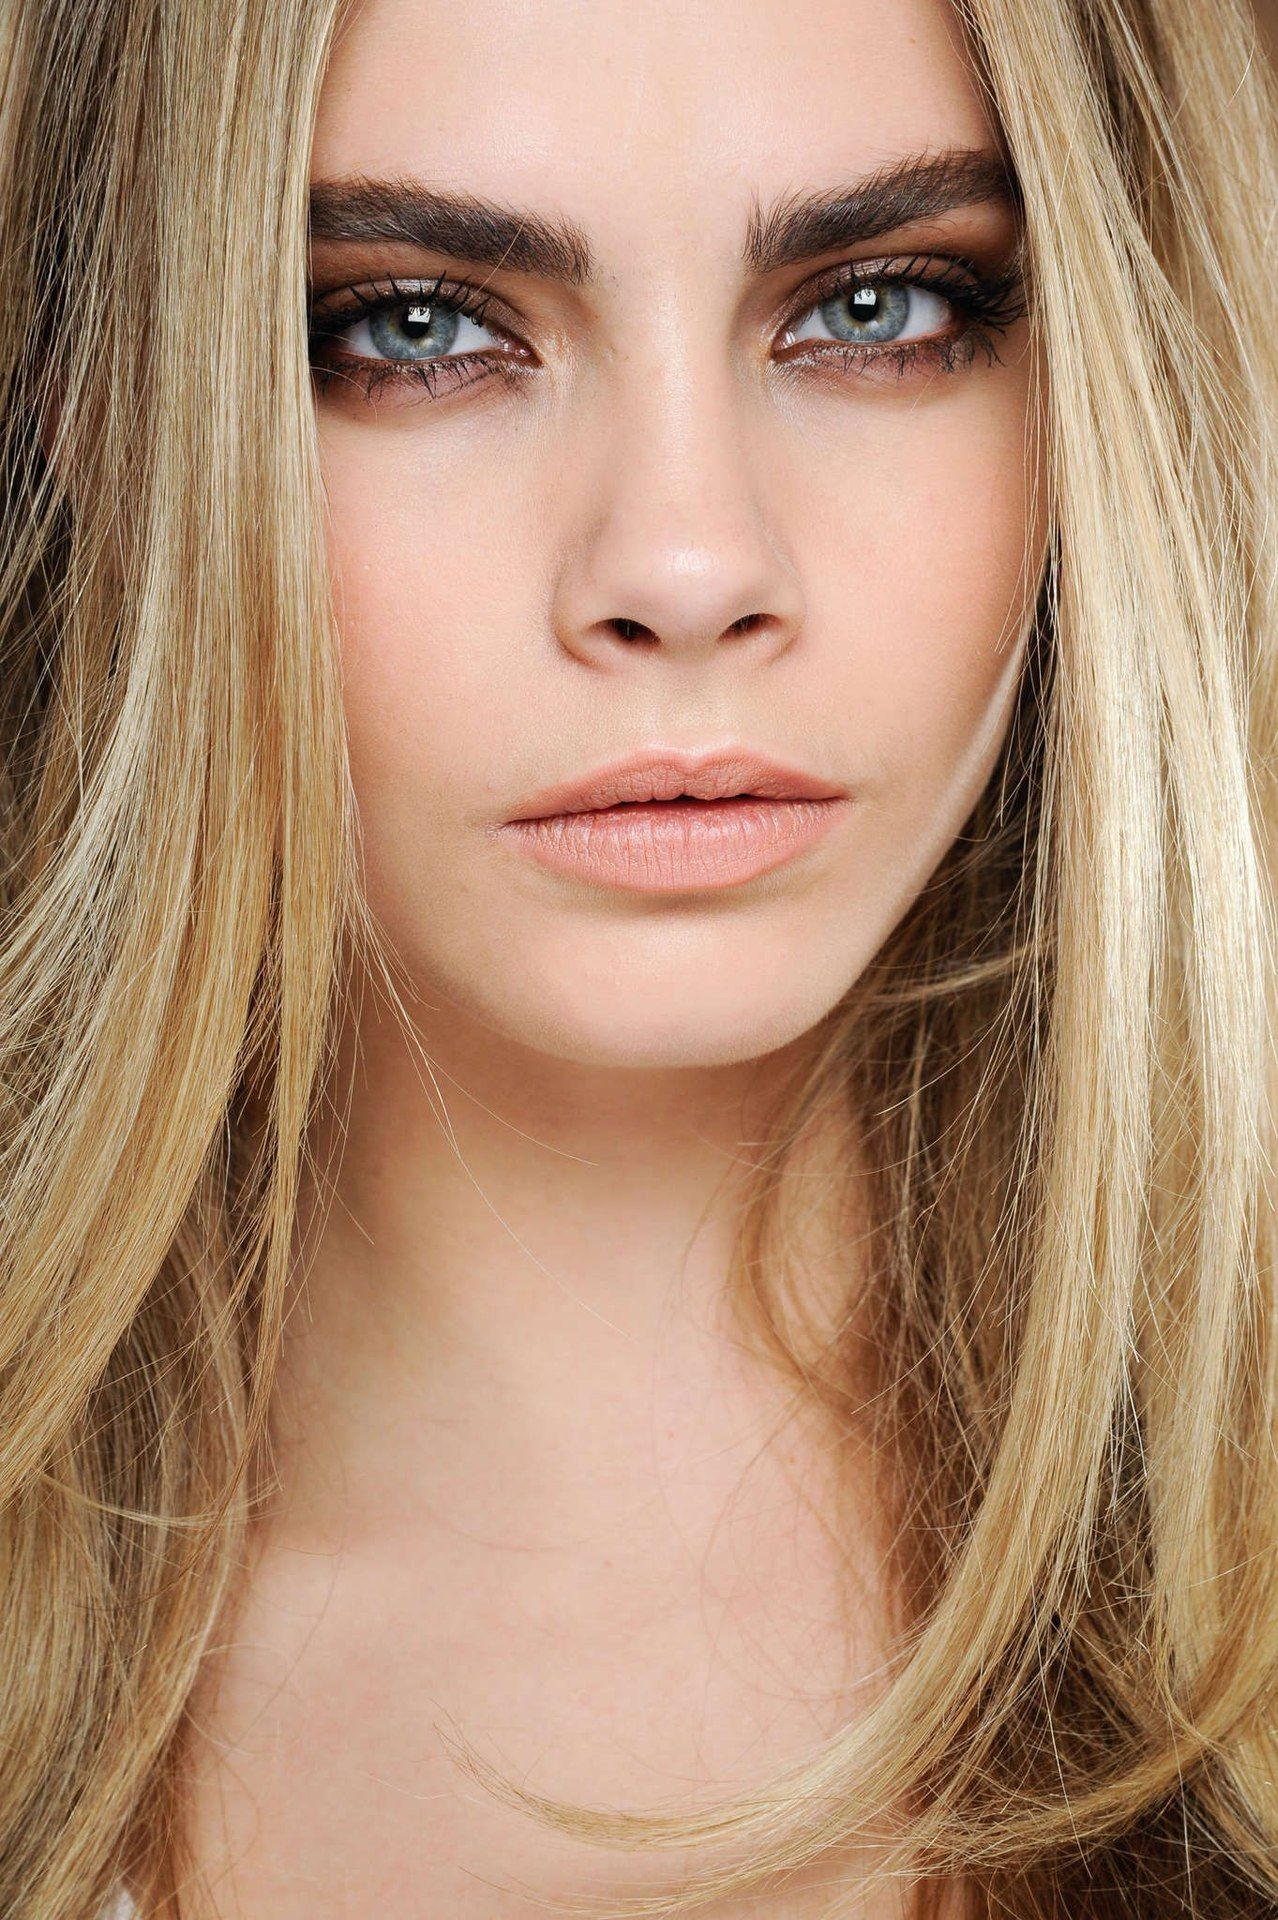 BOHO BEAUTY TREND bold, statement eyebrows, natural